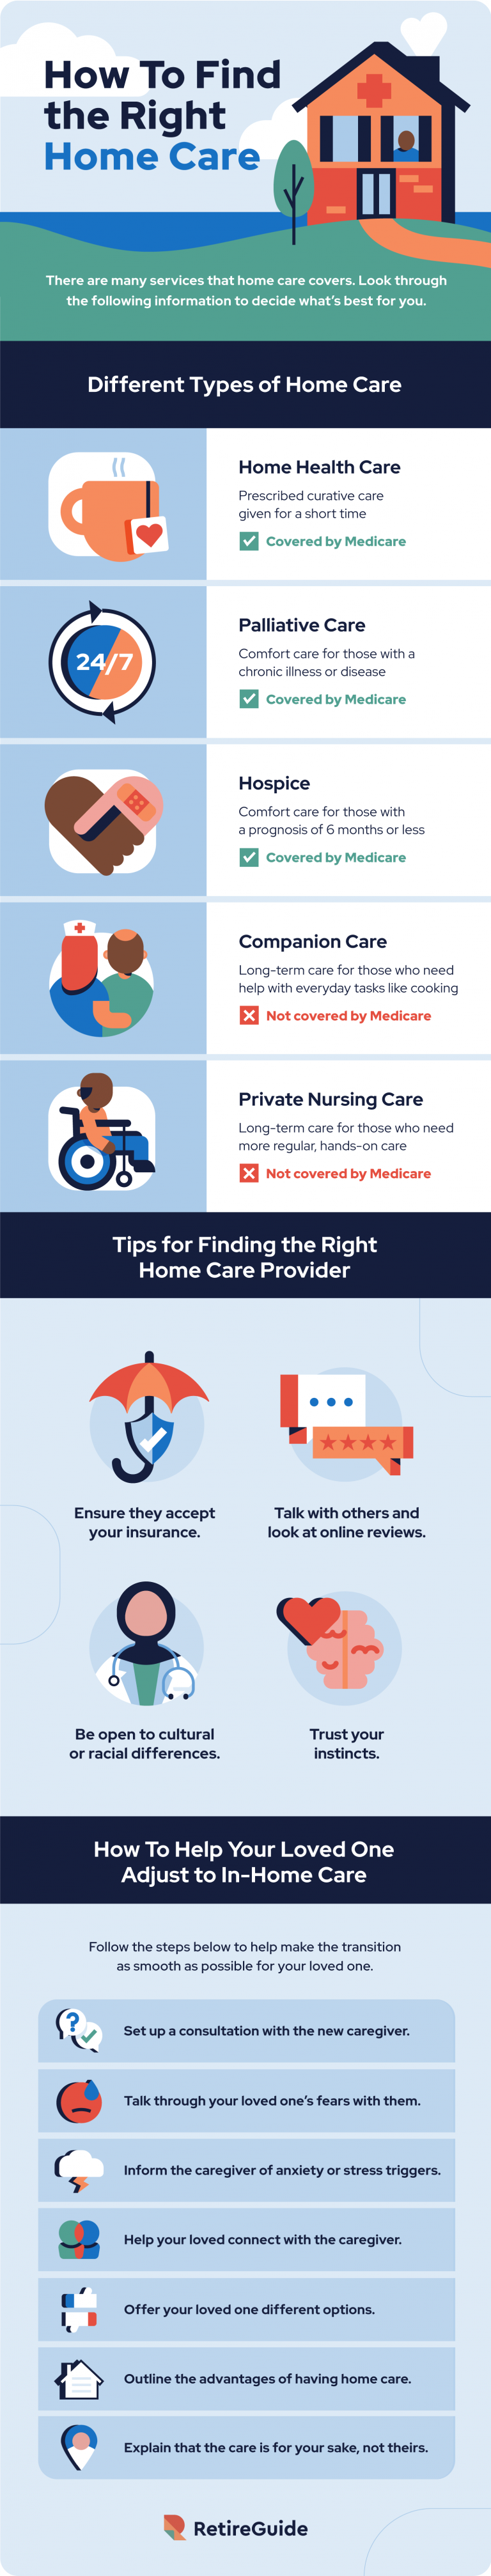 Types of home care and their costs